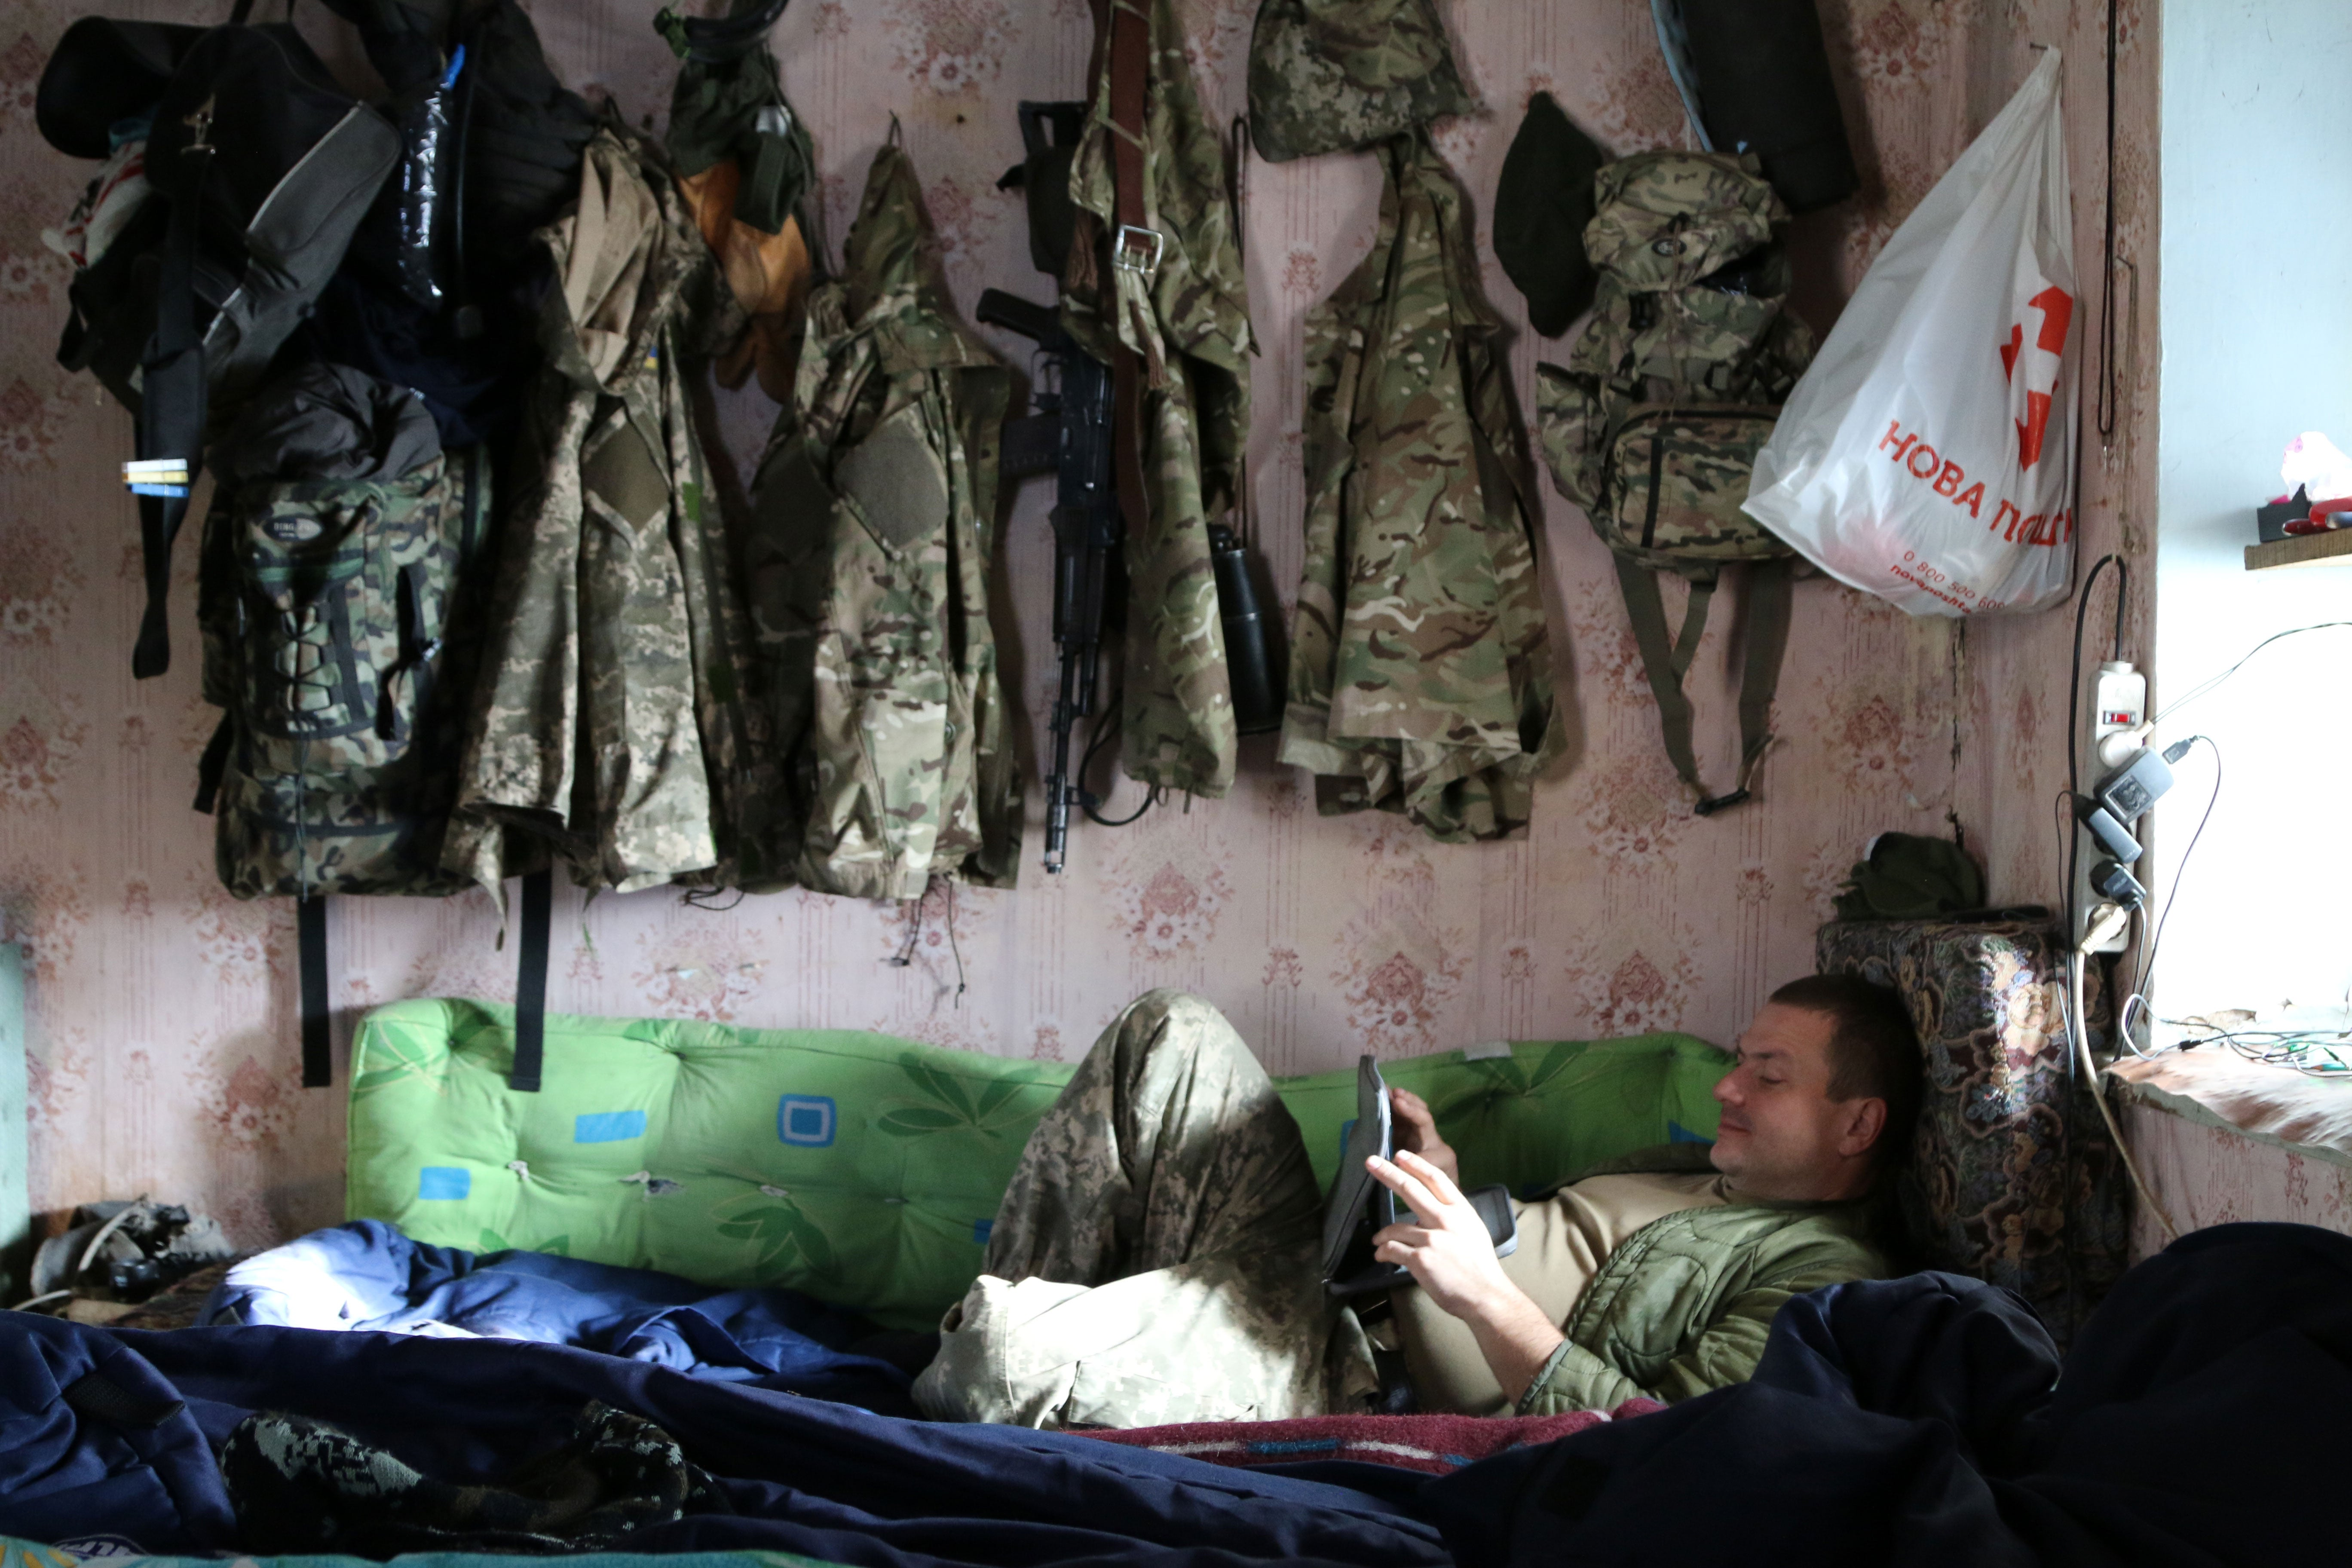 For many Ukrainian soldiers, war has become a way of life.